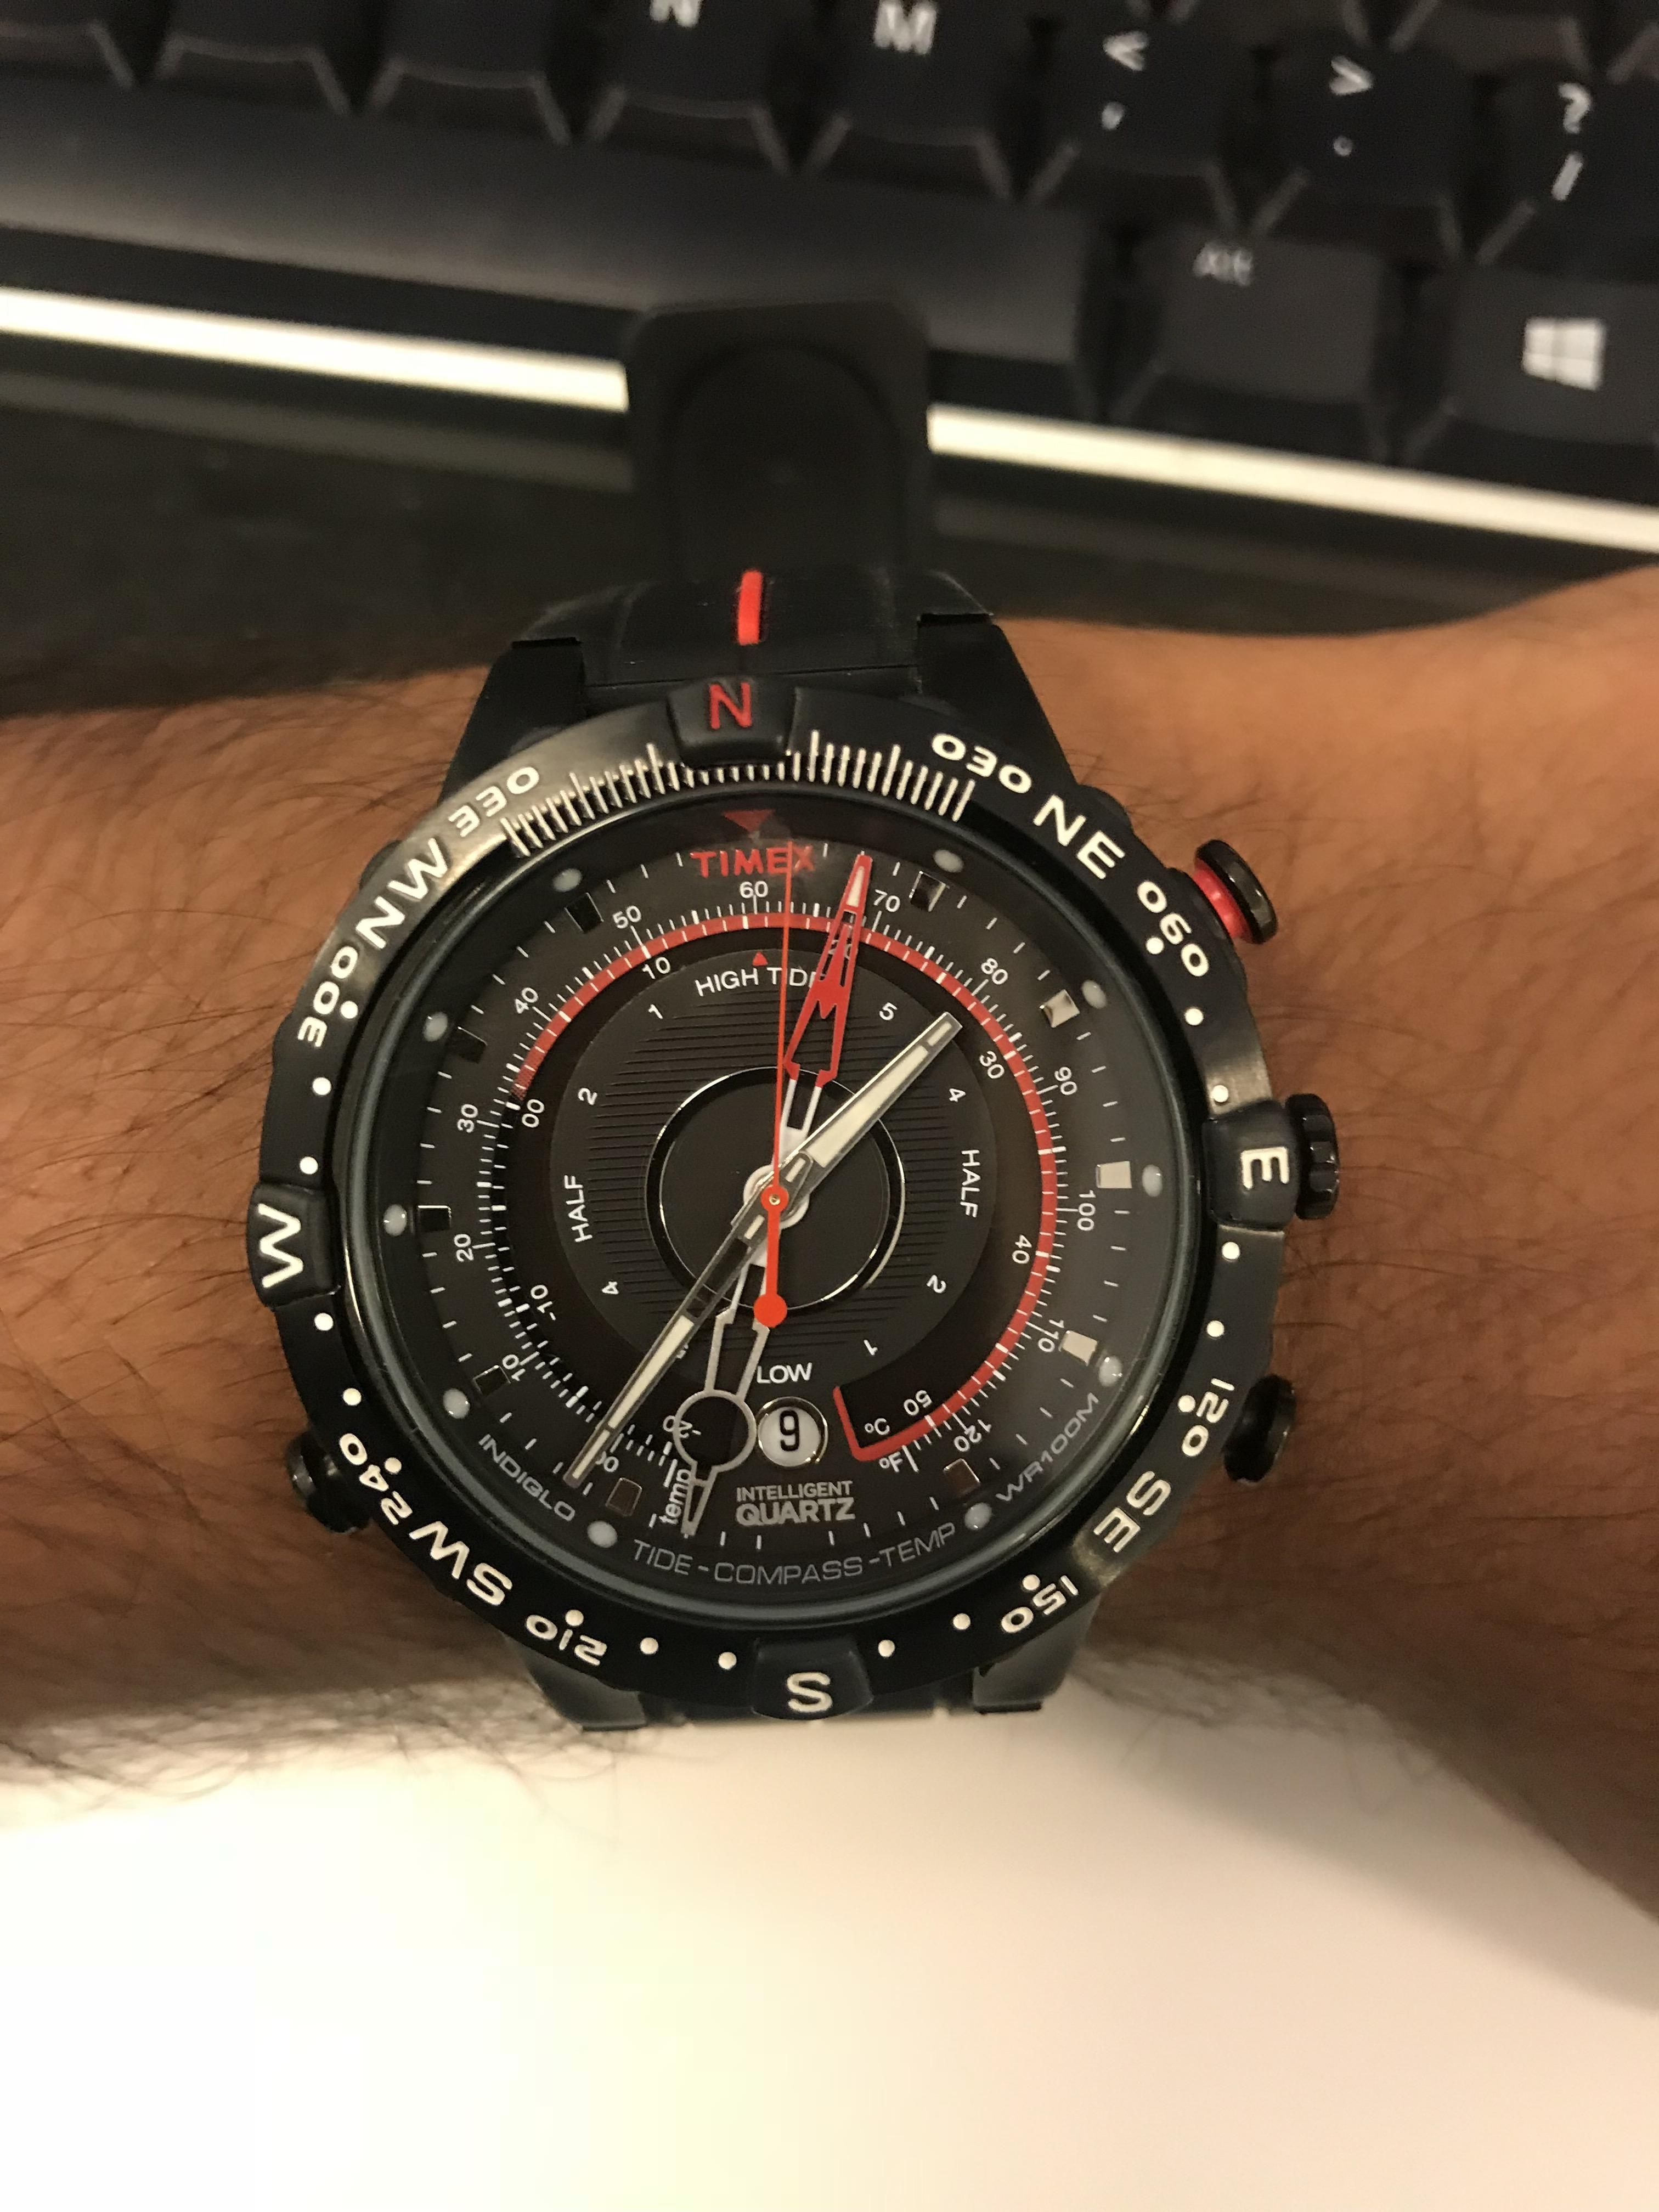 Timex Expedition] First expensive watch that i dreamt of ing when